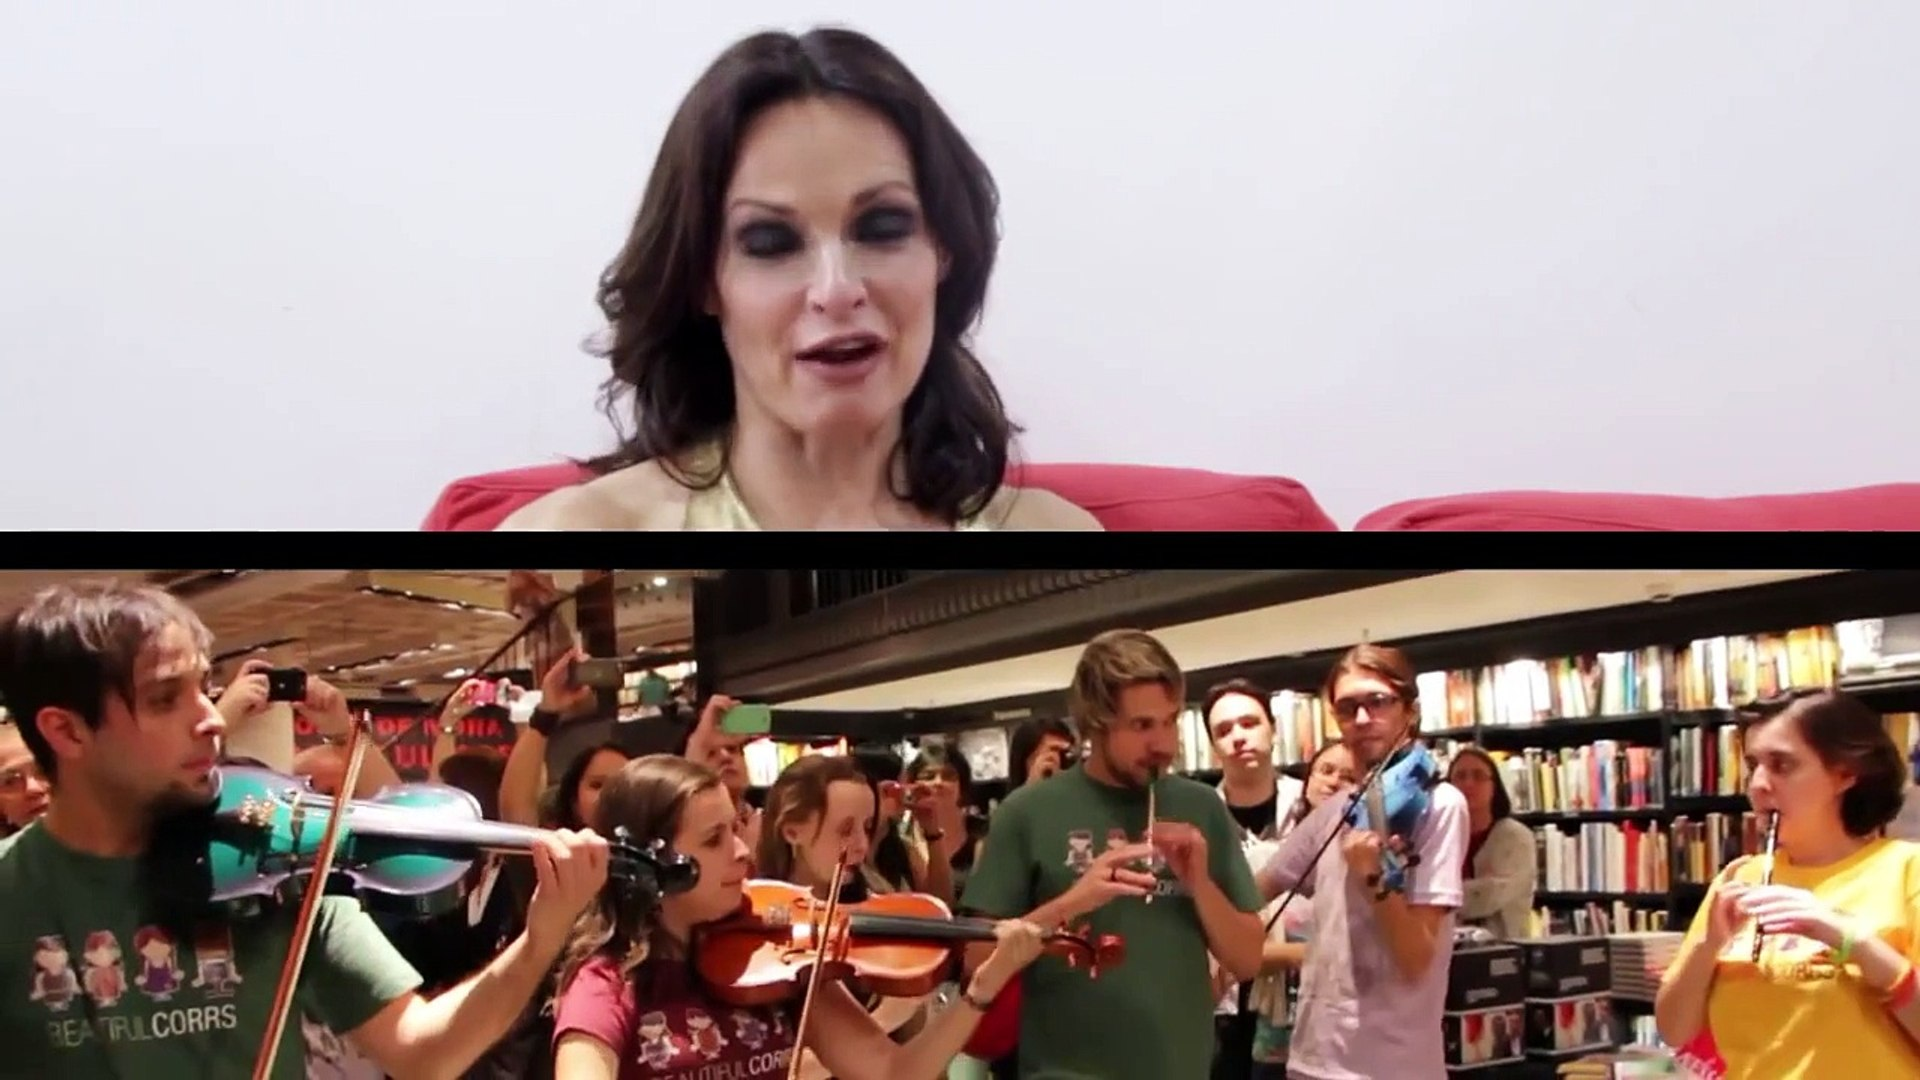 Full Circle, the documentary EXTRAS: Sharon Corr interview